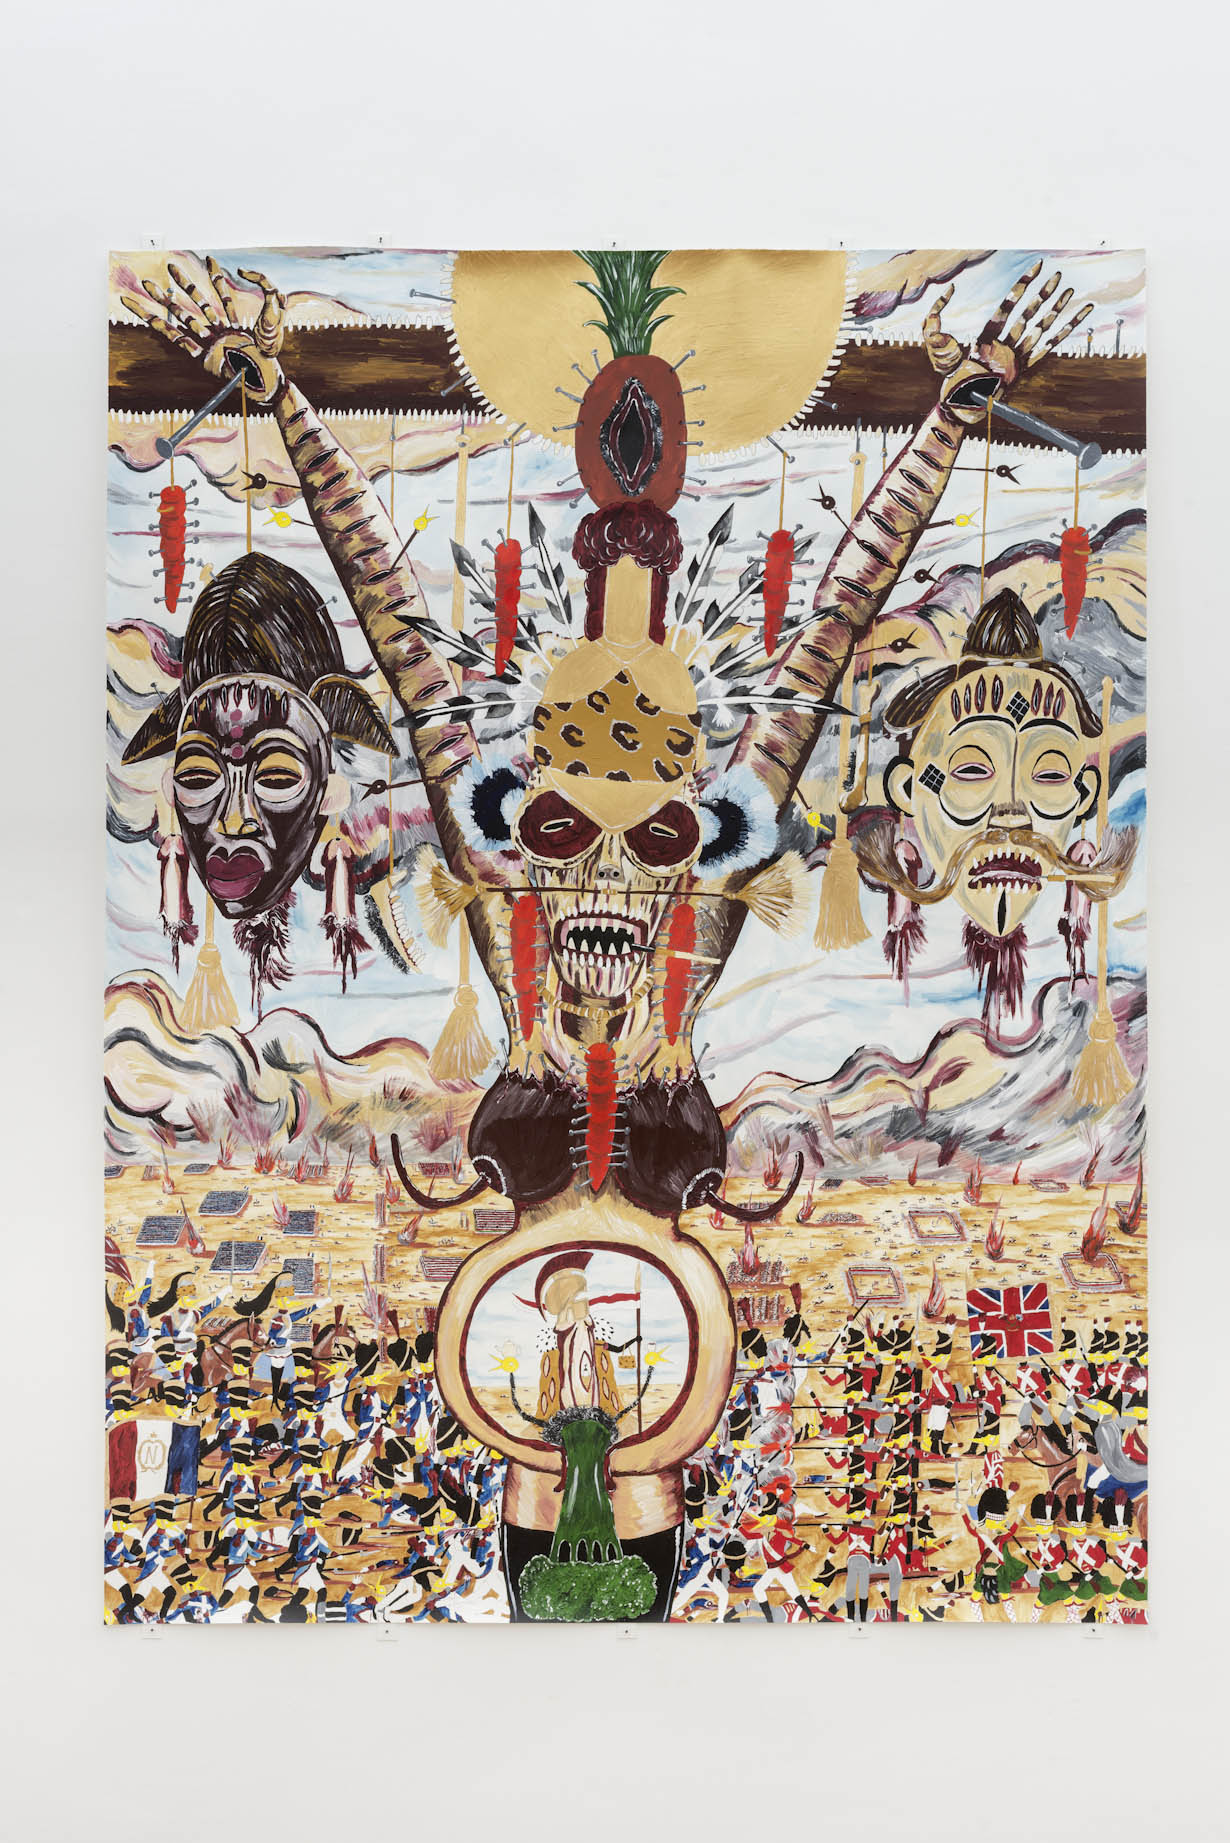 Andrew Gilbert, 'The Death of Shaka Napoleon and Birth of the Holy Brocoli, 1815', 2014, acrylic, watercolor and fineliner on paper, 200 x 150 cm, Photo by Leonie Felle